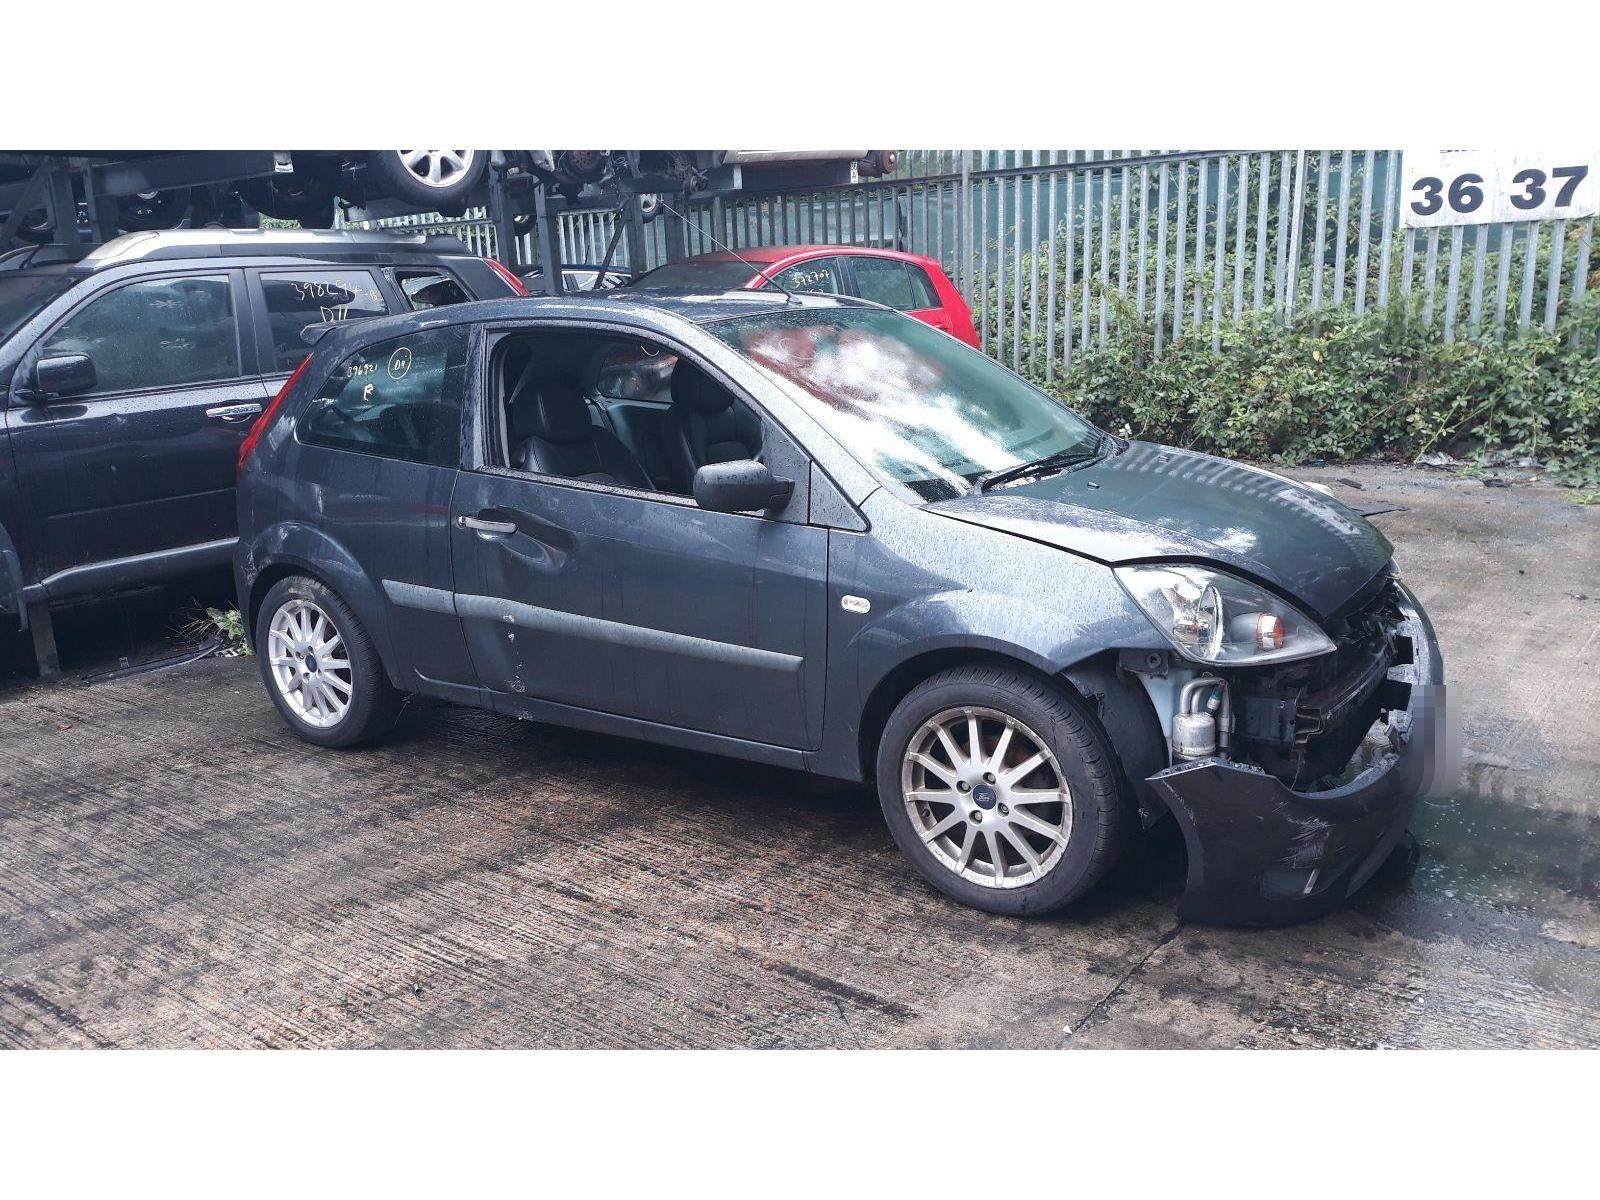 Ford fiesta 2002 to 2008 zetec s tdci 3 door hatchback scrap salvage car for sale auction silverlake autoparts